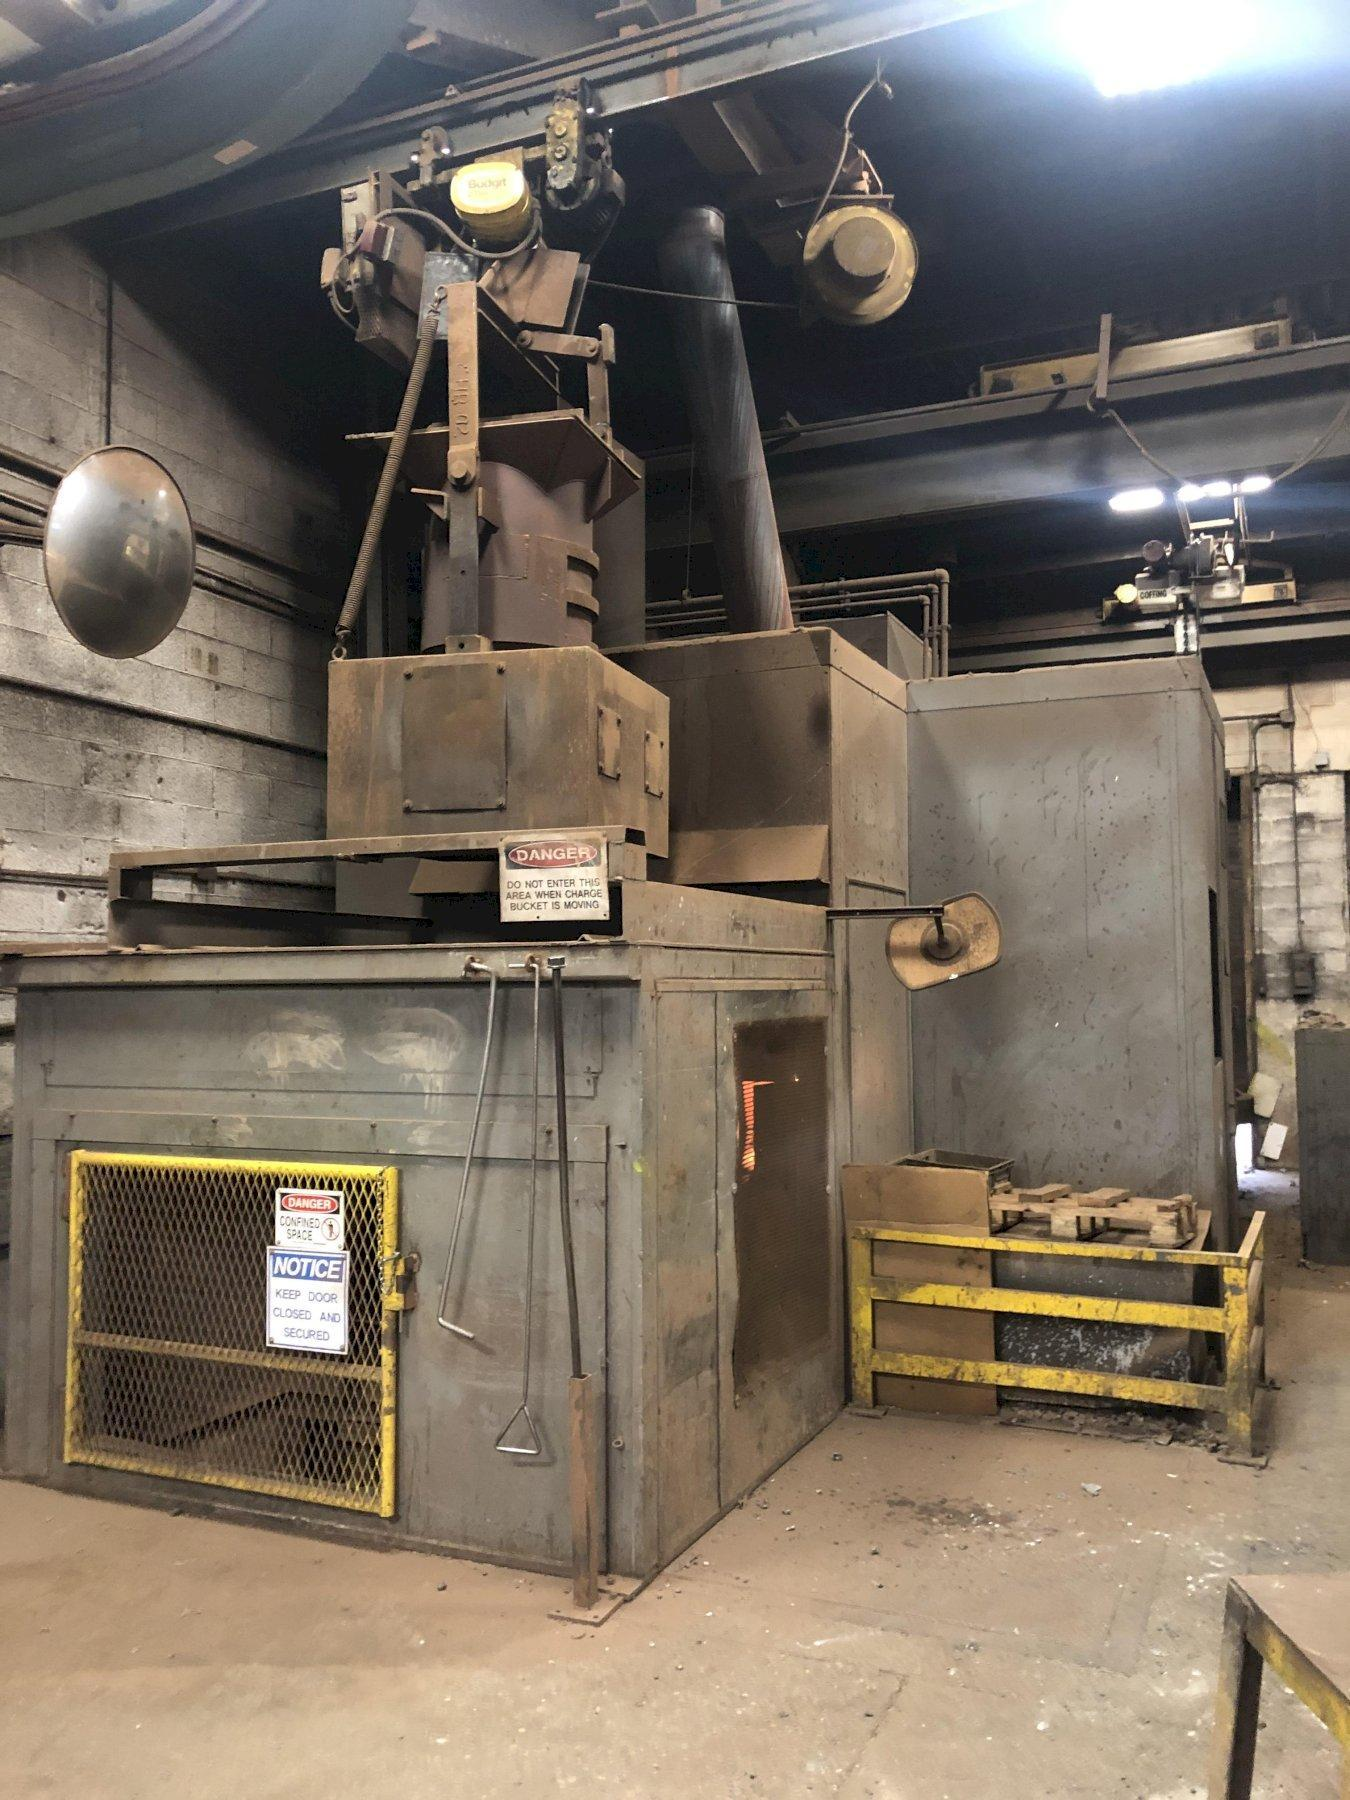 1988 INDUCTOTHERM FURNACE SYSTEM TO INCLUDE BALTEAU  INCOMING TRANSFORMER NEW 2020, 1700 KW, 12470/7200 PRIMARY, 575 SECONDARY, POWER CABLES FROM TRANSFORMER TO THE POWER SUPPLY, INDUCTOTHERM MODEL 1500-2 POWERMELT FURNACE POWER SUPPLY S/N 88-26355-247-11 RATED AT 1500 KW, 300 HZ., INTERCONNECTING BUSS AND CABLES, 2- 6000# STEEL SHELL HYDRAULIC TILTING FURNACES WITH STANDS, HYDRAULIC SYSTEM WITH PUMPS, WATER SYSTEM WITH PUMPING STATION AND NEW 2019 EVAPCO COOLING TOWER MODEL ATWB-4-3P12-Z SN 19-871933, SPARE PARTS, LINING FORMS